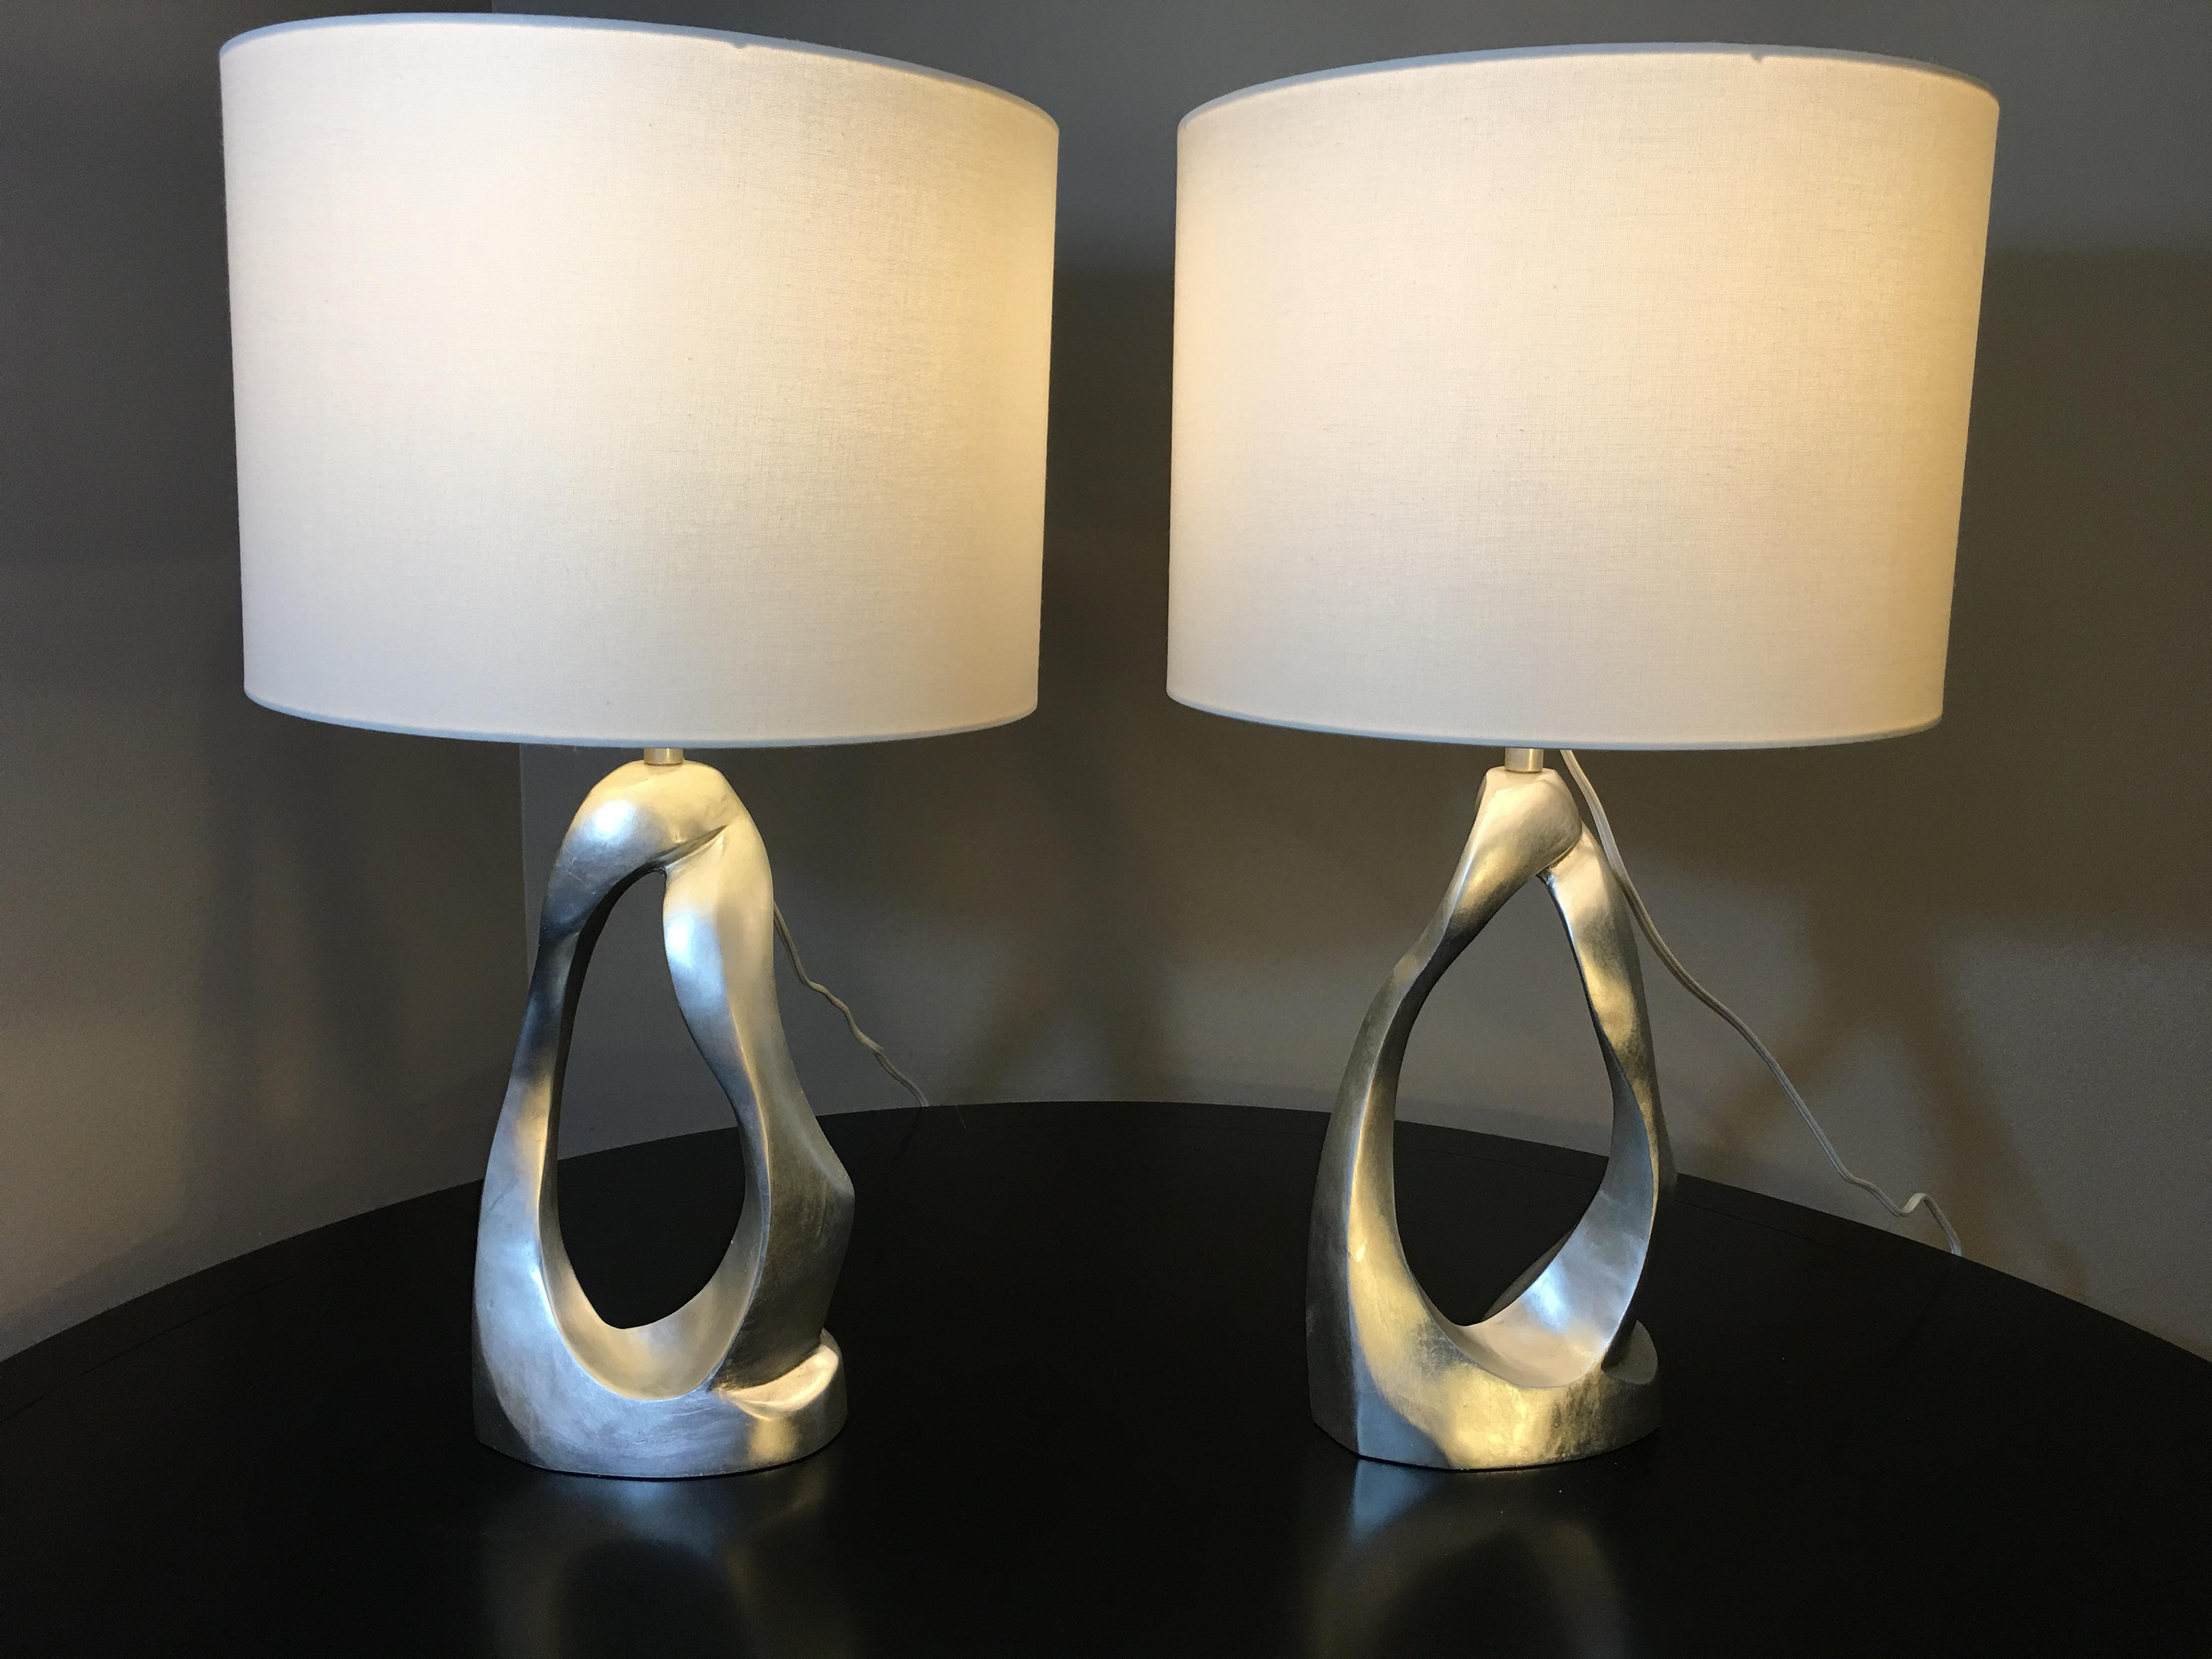 Aerin lauder for visual comfort cannes table lamps a pair image 4 of 9